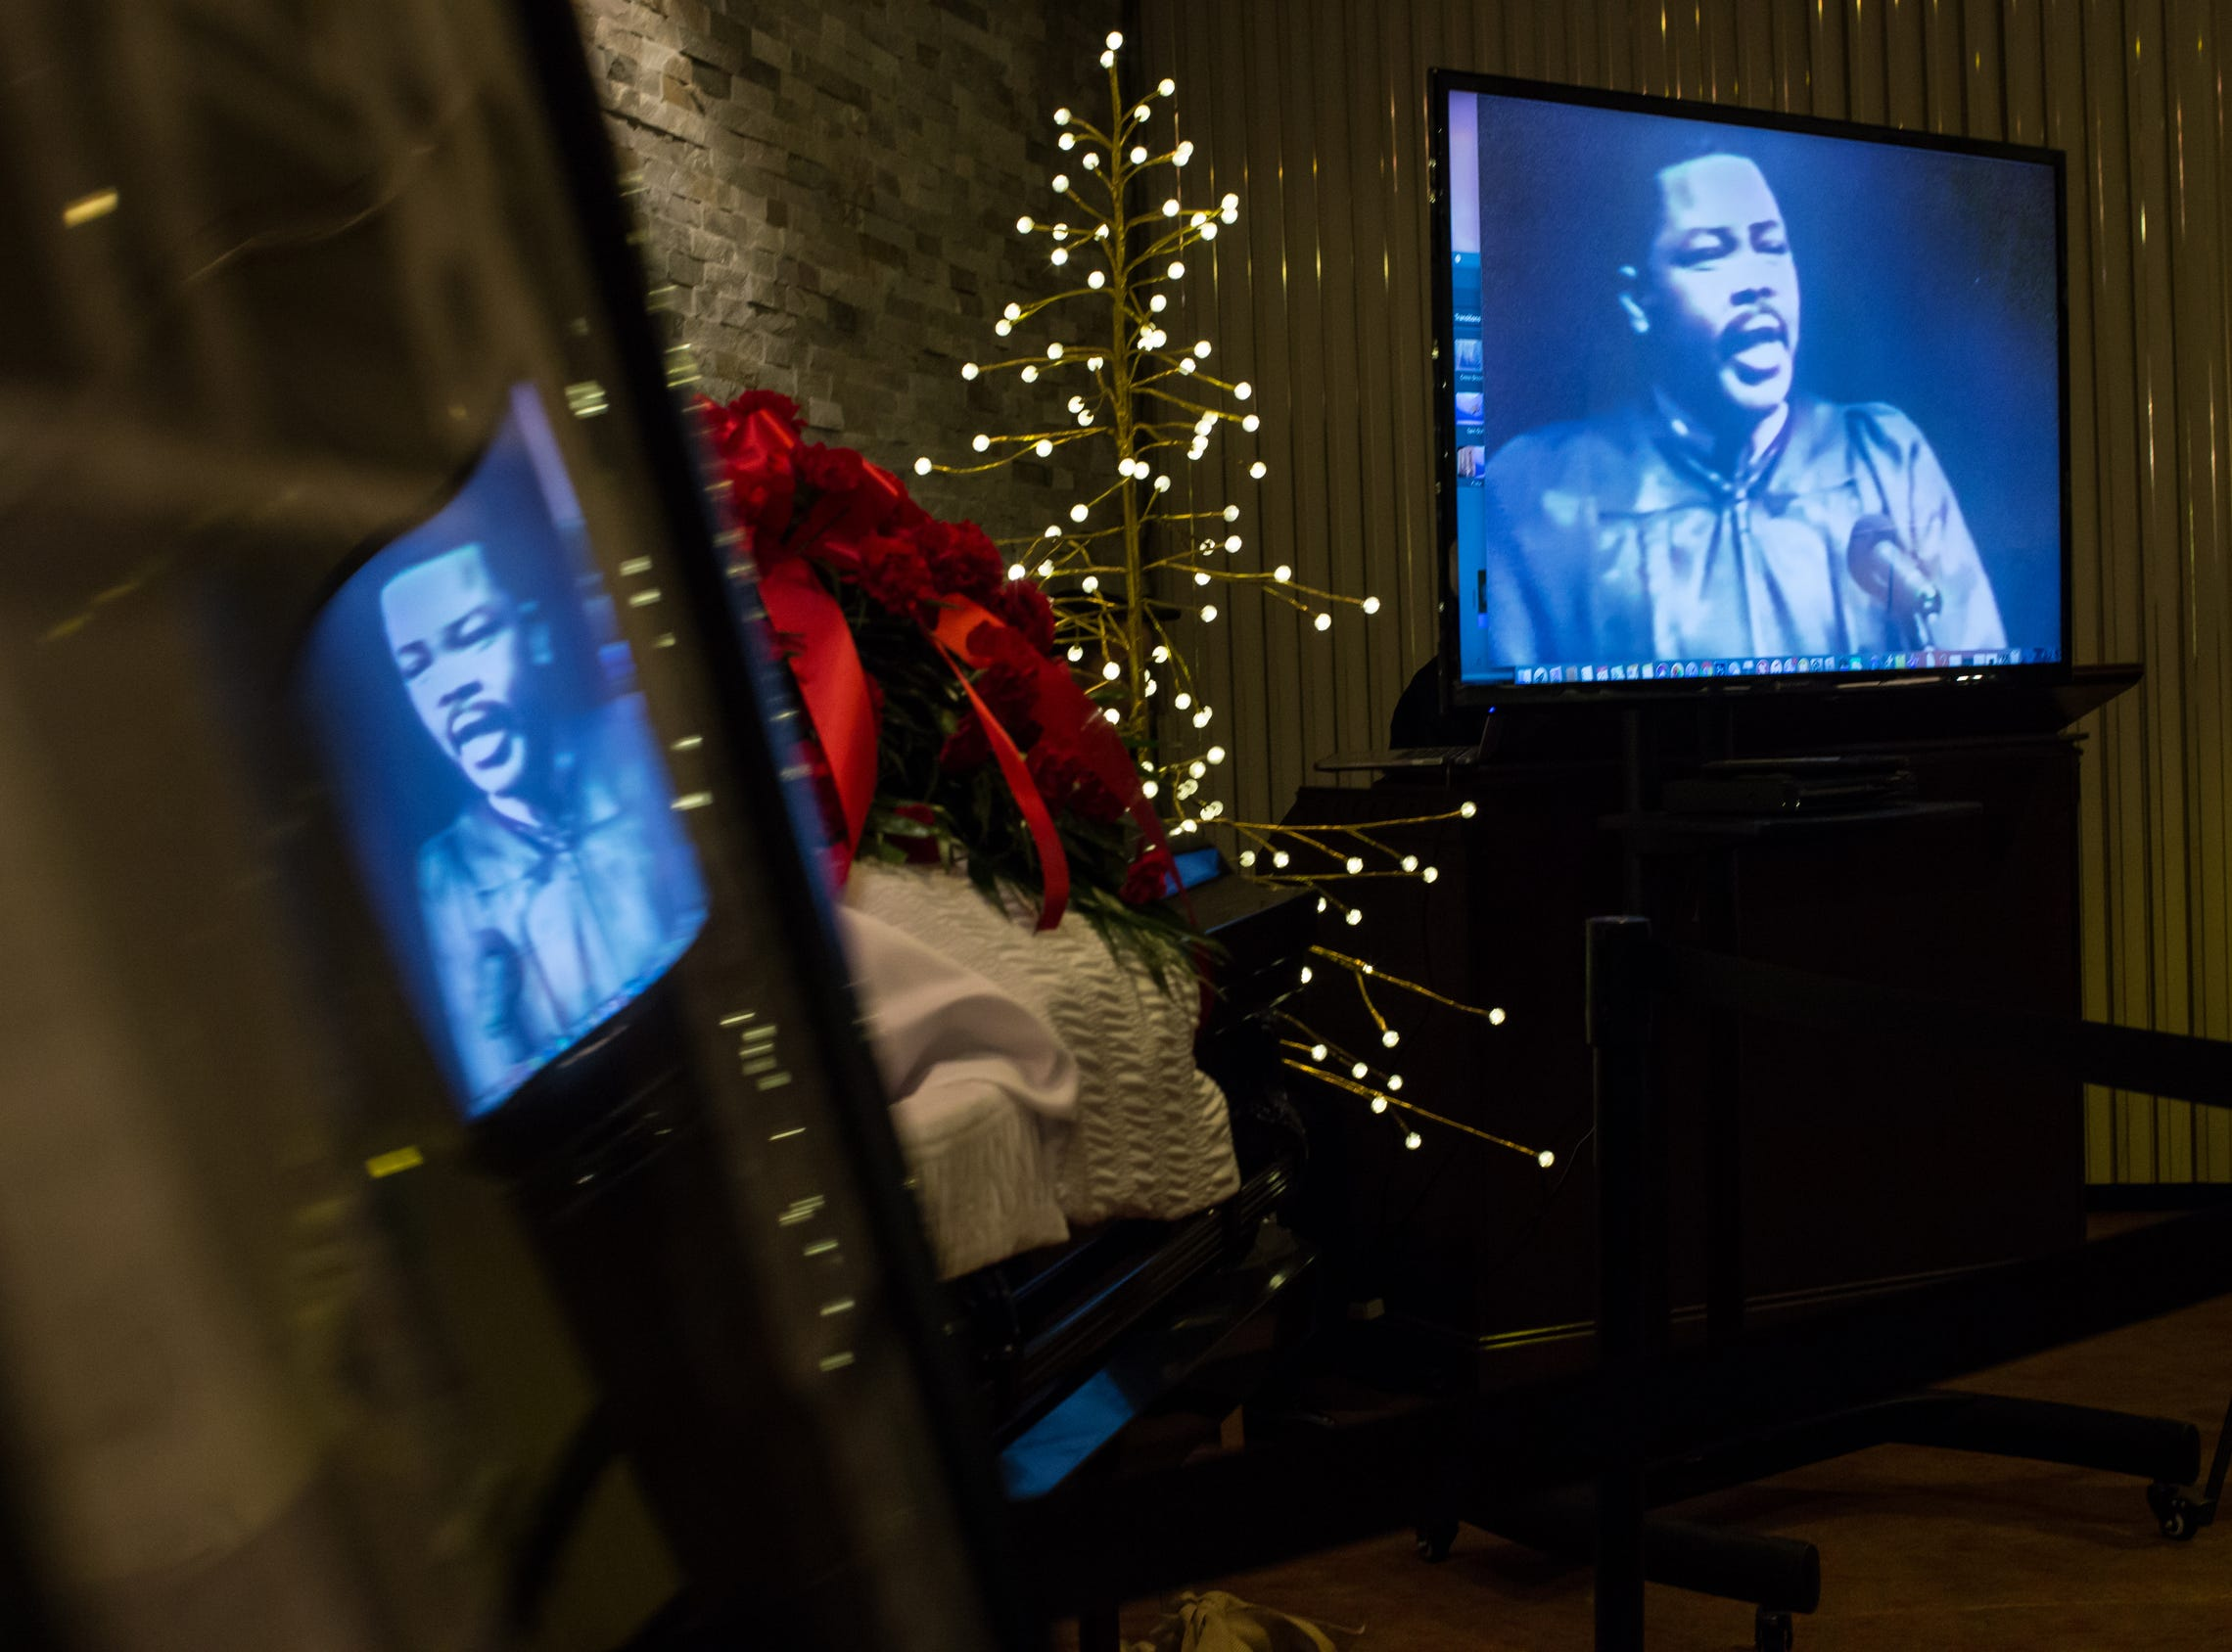 A video of the late Rudy Barker impersonating late civil rights leader Martin Luther King Jr. plays next to his casket during his funeral at Hutchison Funeral Home in Detroit on Monday, January 21, 2019. Barker was known for his impressions of late civil rights leader Martin Luther King Jr. and was buried on the national holiday honoring his hero.